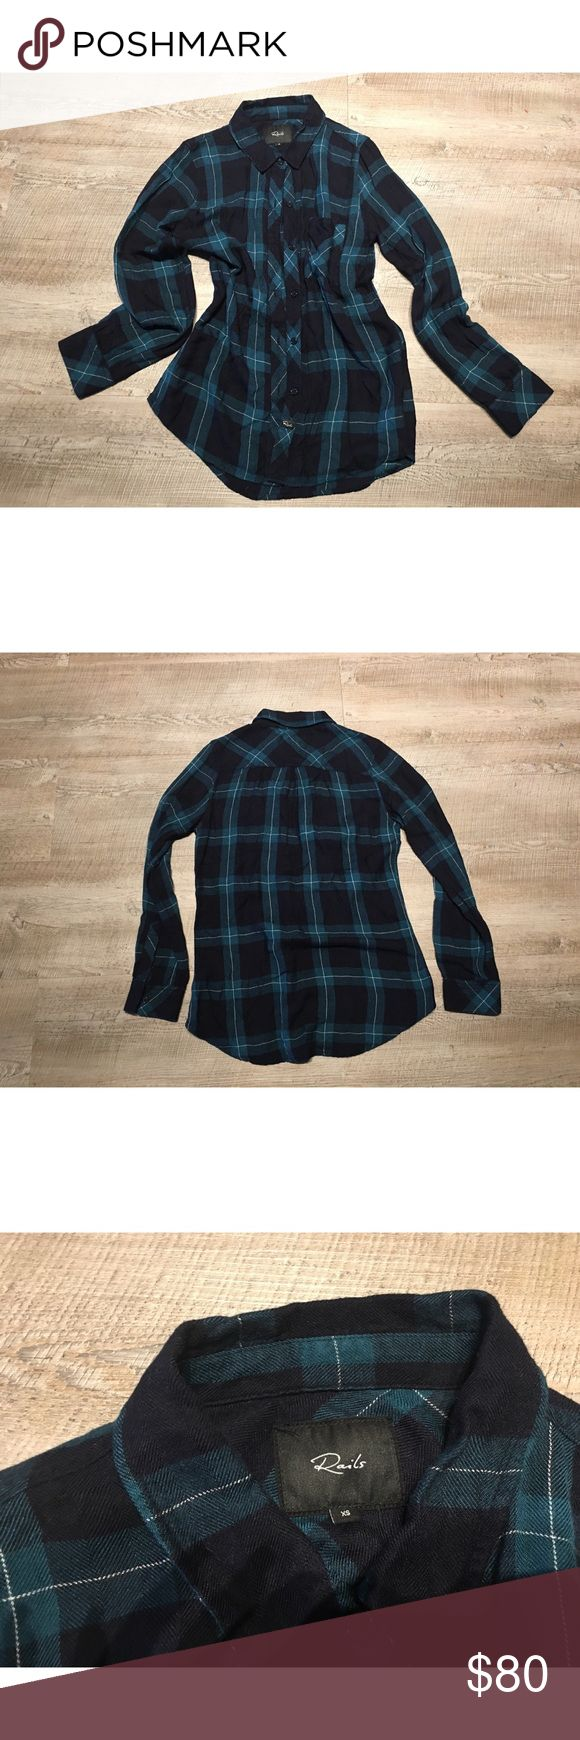 Rails hunter Plaid Lumber Flannel Buttondown shirt ✨(❁´◡`❁) ωḙℓḉ✺Պḙ (❁´◡`❁)✨      🦋Description:     •Beautiful deep Teal Blue & Black Plaid fabric    •Long sleeve    •Collared    •Button down       ✨        🦋Brand: Rails         🦋Size: XS        🦋Condition: Excellent preowned shape. No holes or stains.         (please refer to all photos Don't hesitate to ask ANY and ALL question before Bidding/Buying)        Ask about combined shipping and discounts! Rails Tops Button Down Shirts